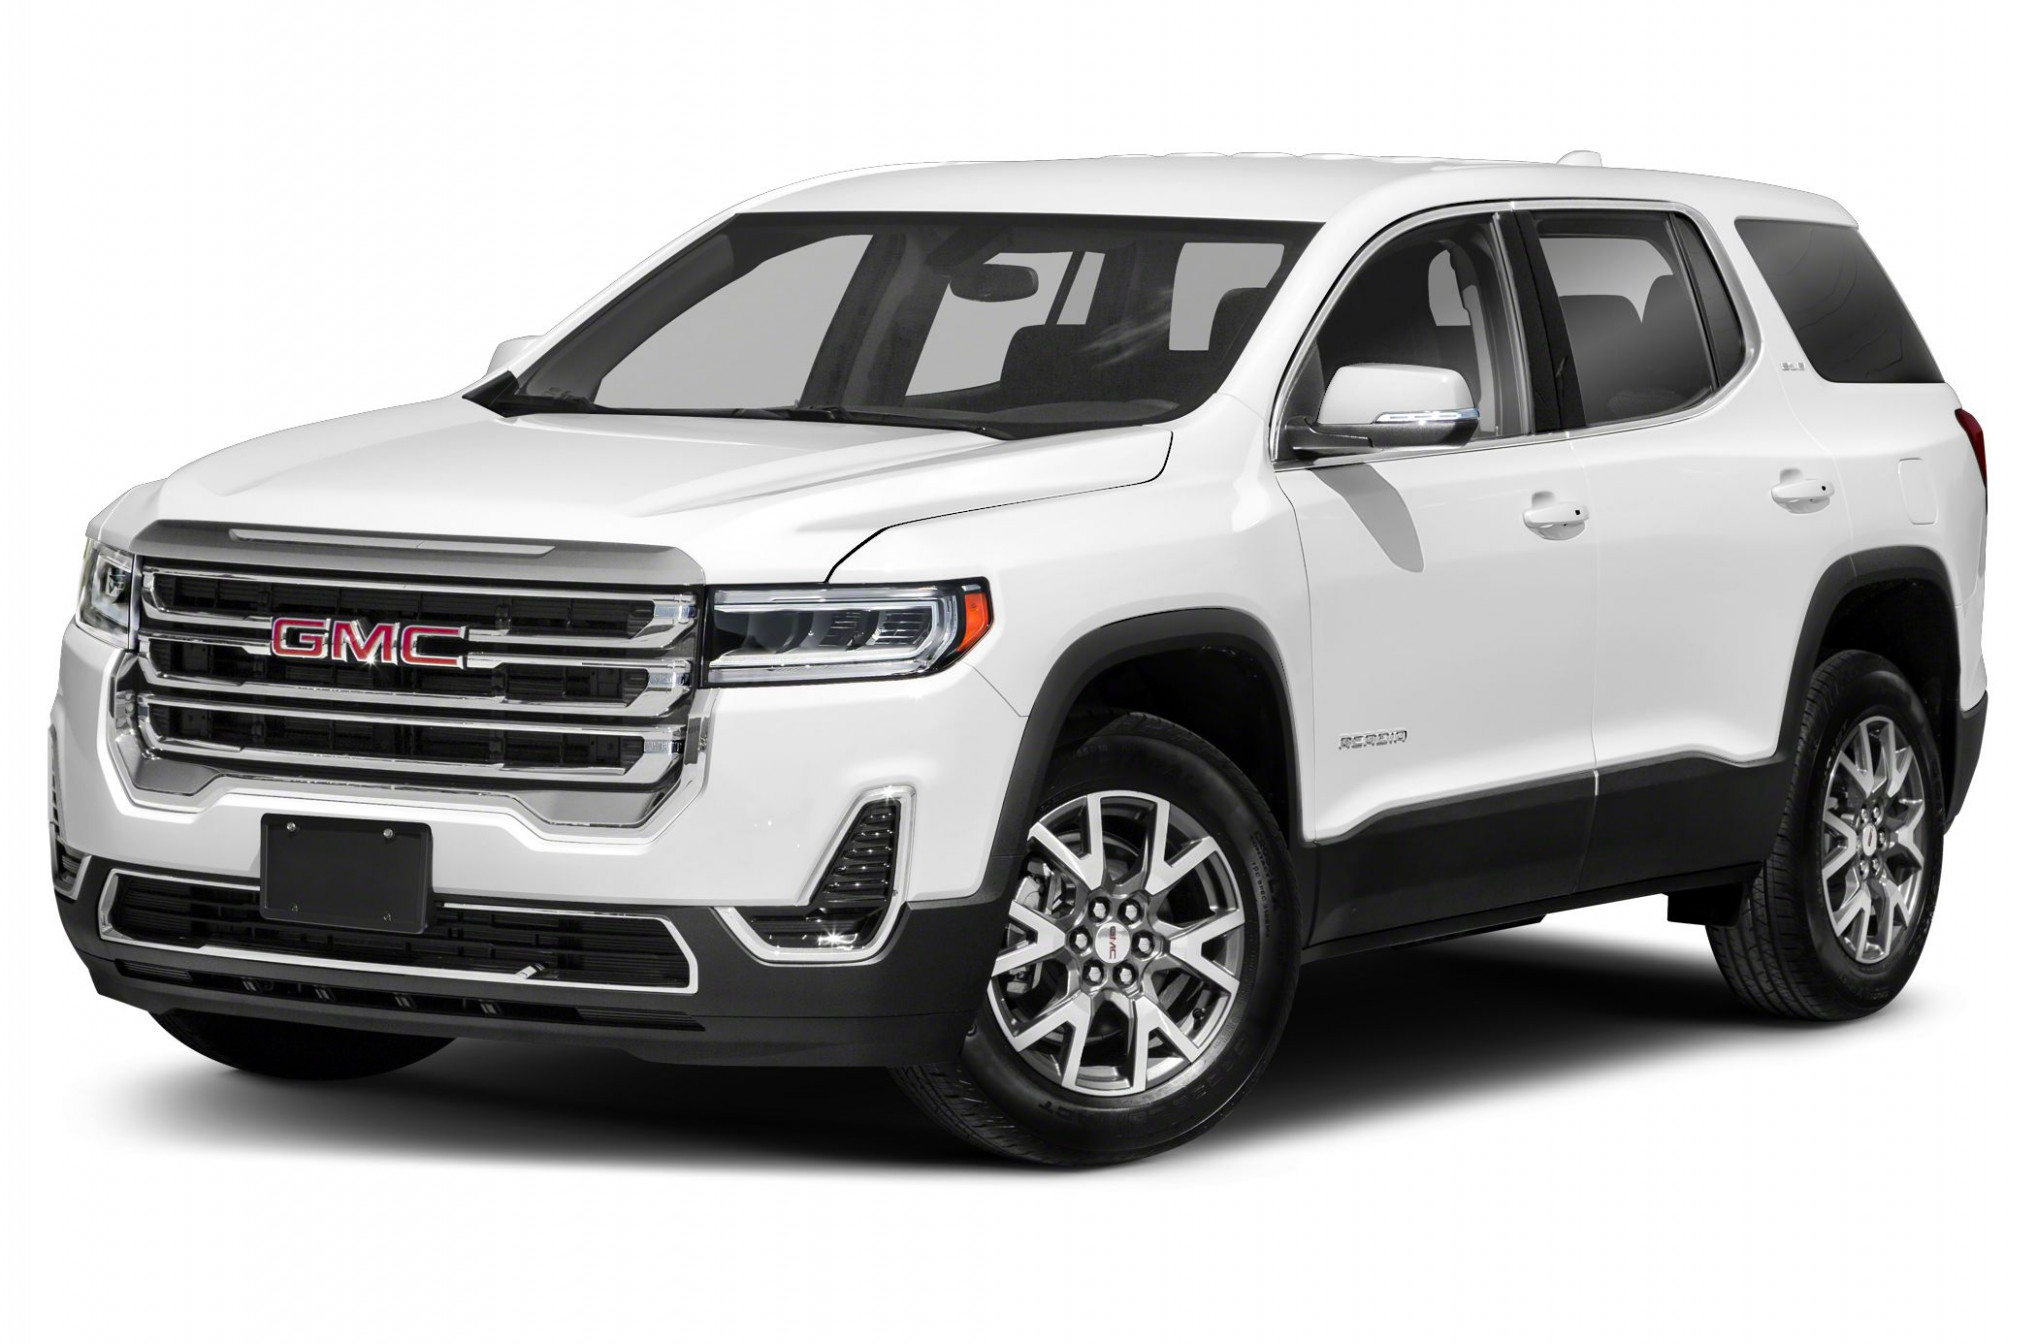 11 GMC Acadia Denali All-wheel Drive Pricing and Options - 2020 gmc price